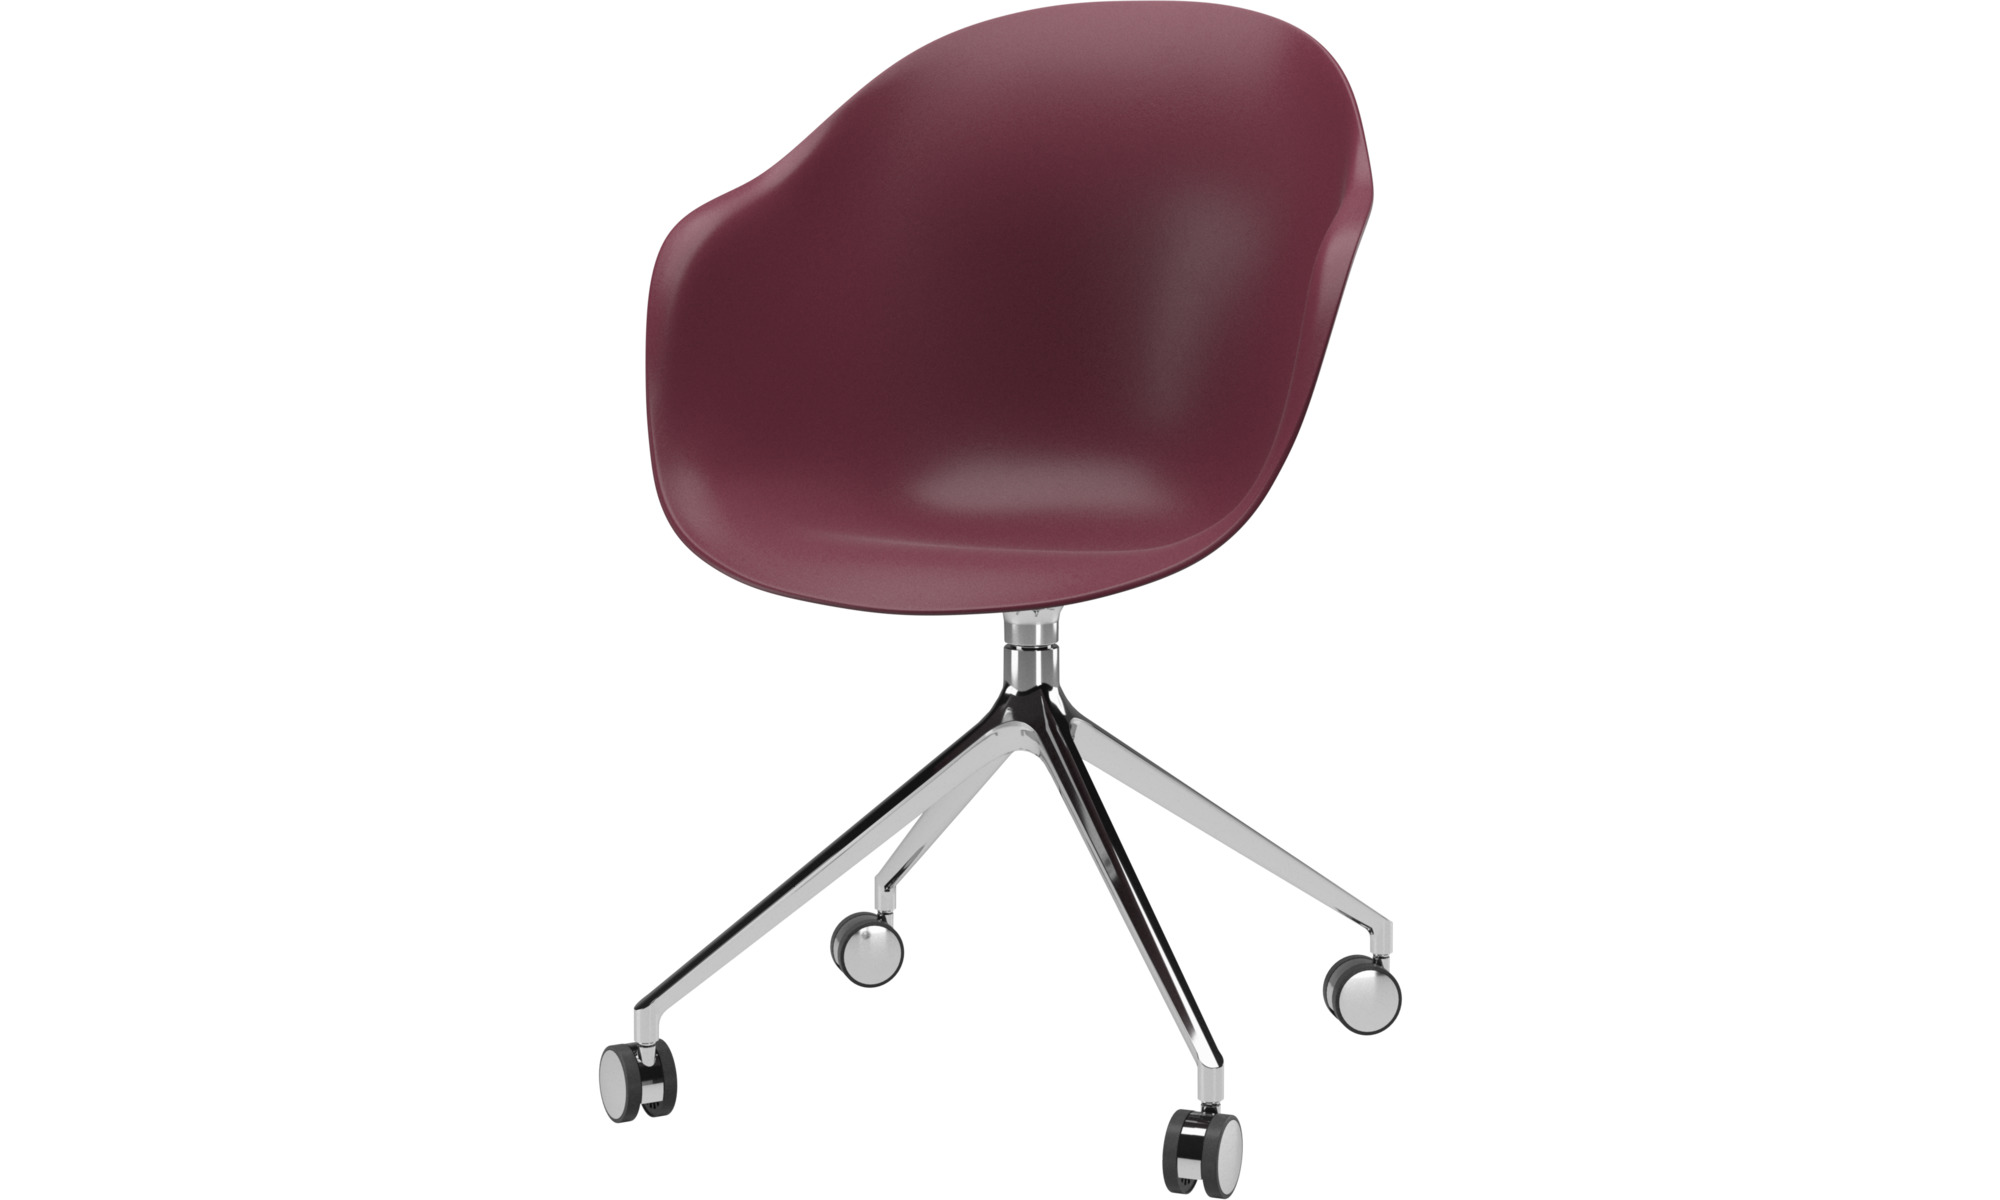 Home office chairs - Adelaide chair with swivel function and wheels - Red - Plastic